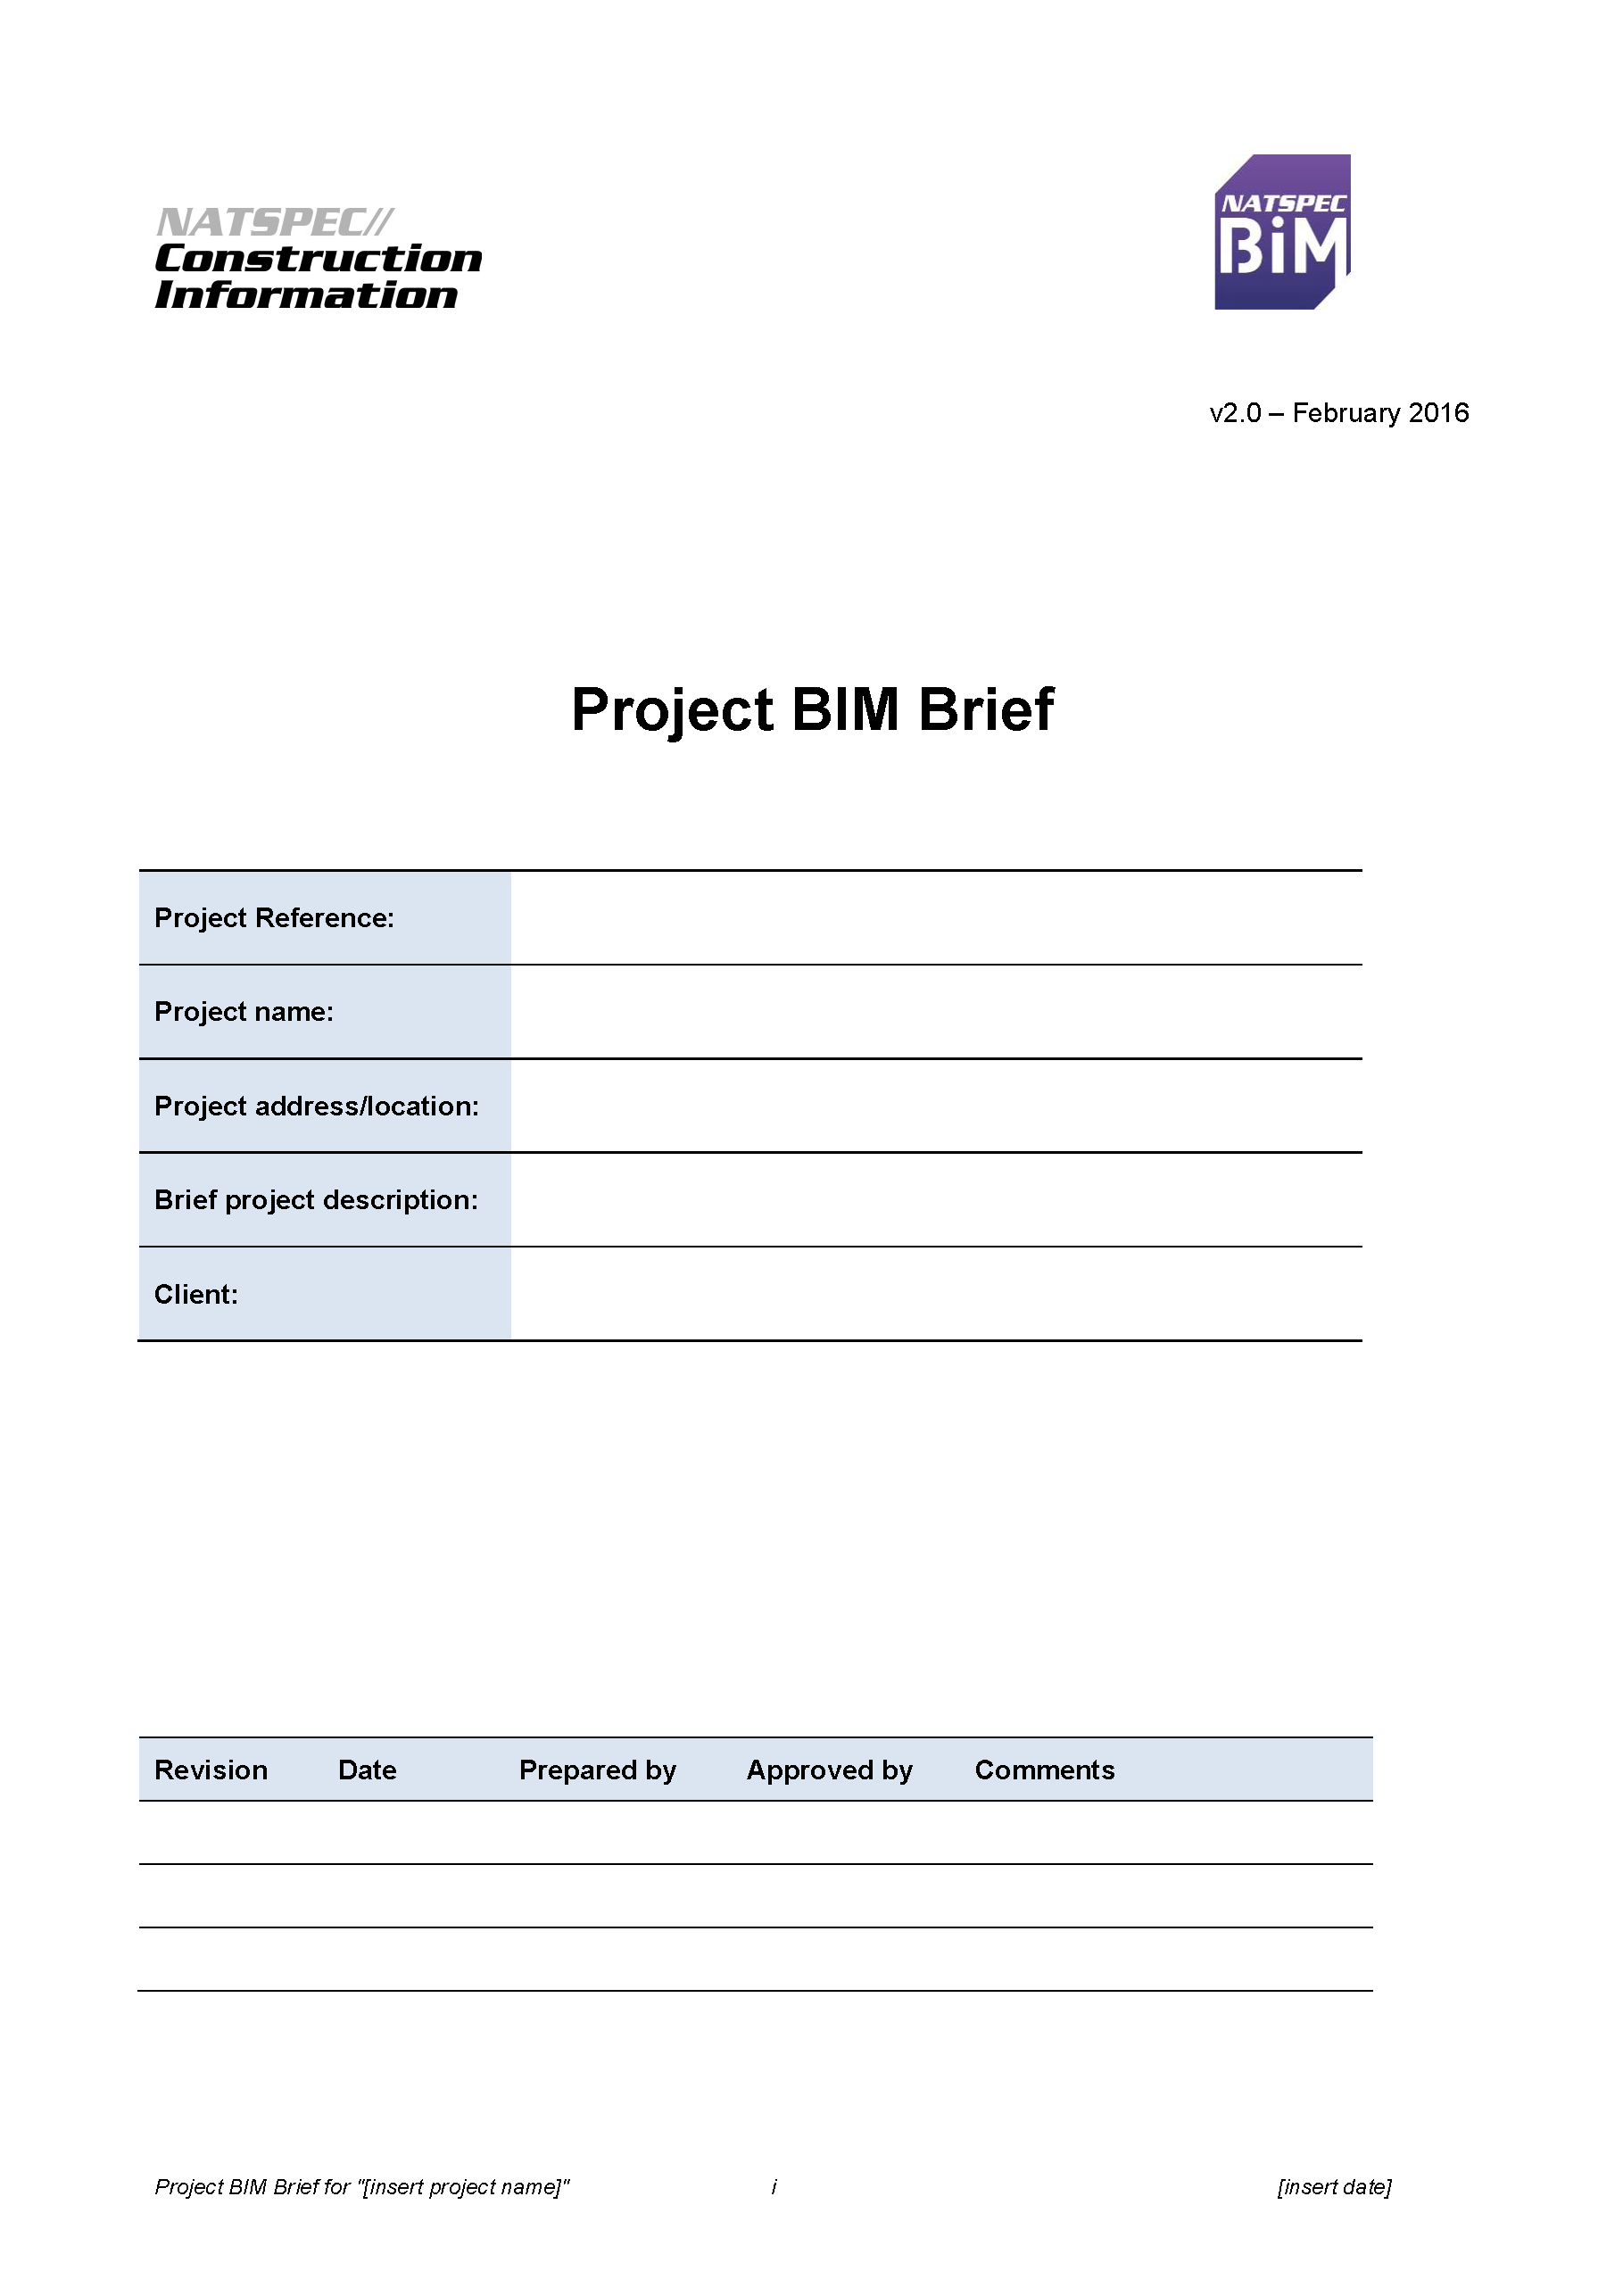 NATSPEC Project BIM Brief Template